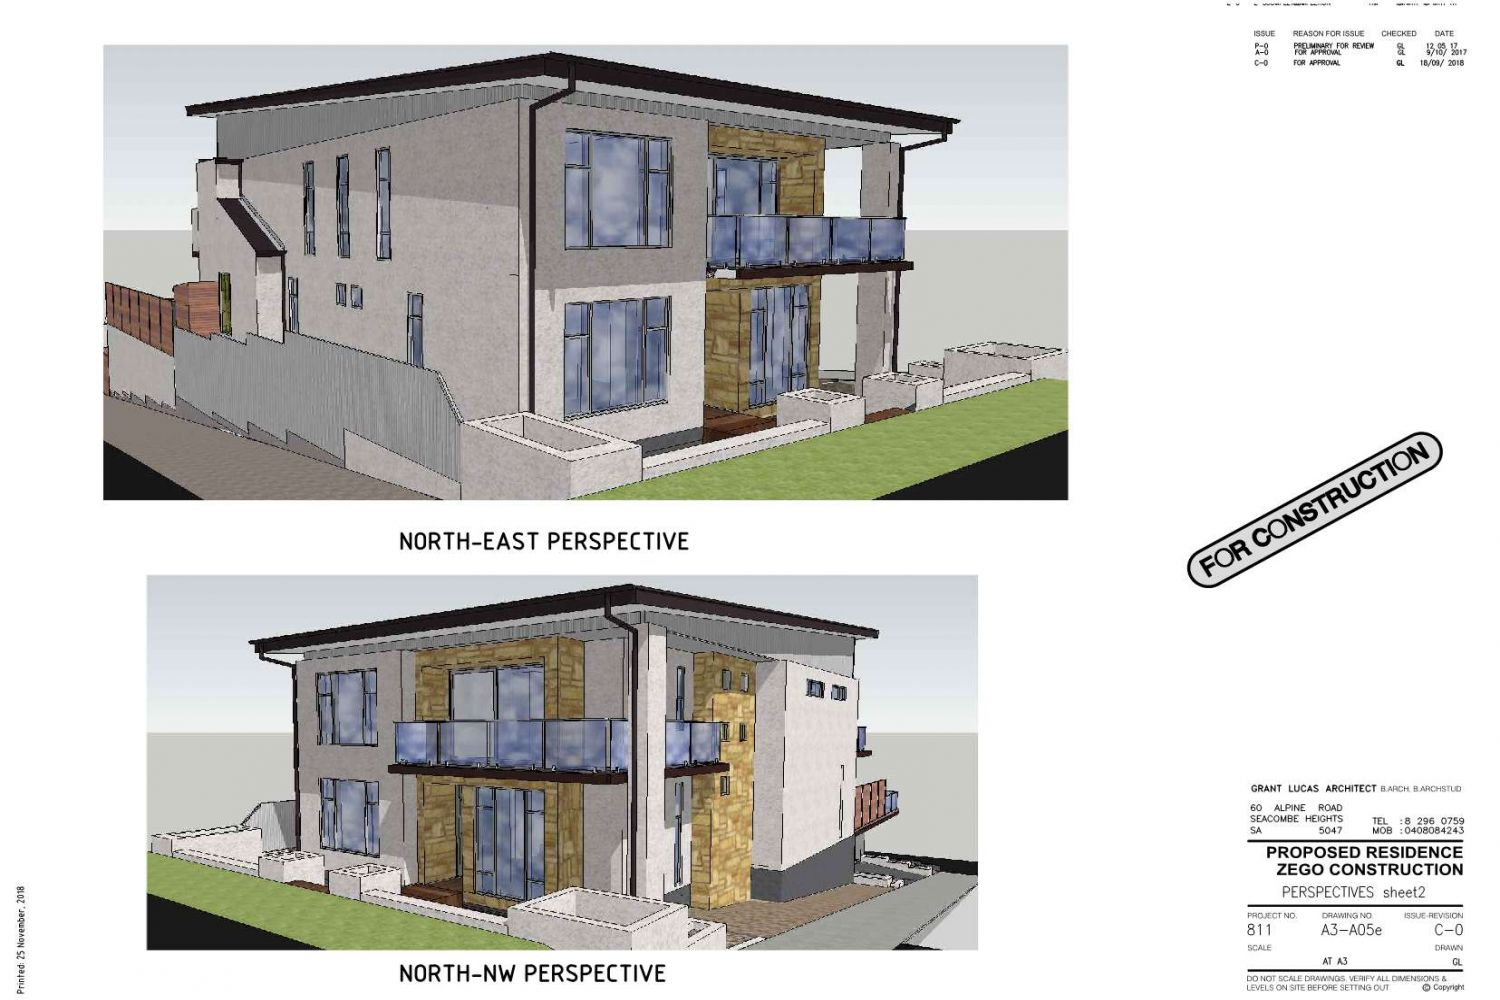 Owner Builder Zego Construction  2 storey Home at Port Noarlunga: Working Drawings Sheet 13: Perspectives sheet 2